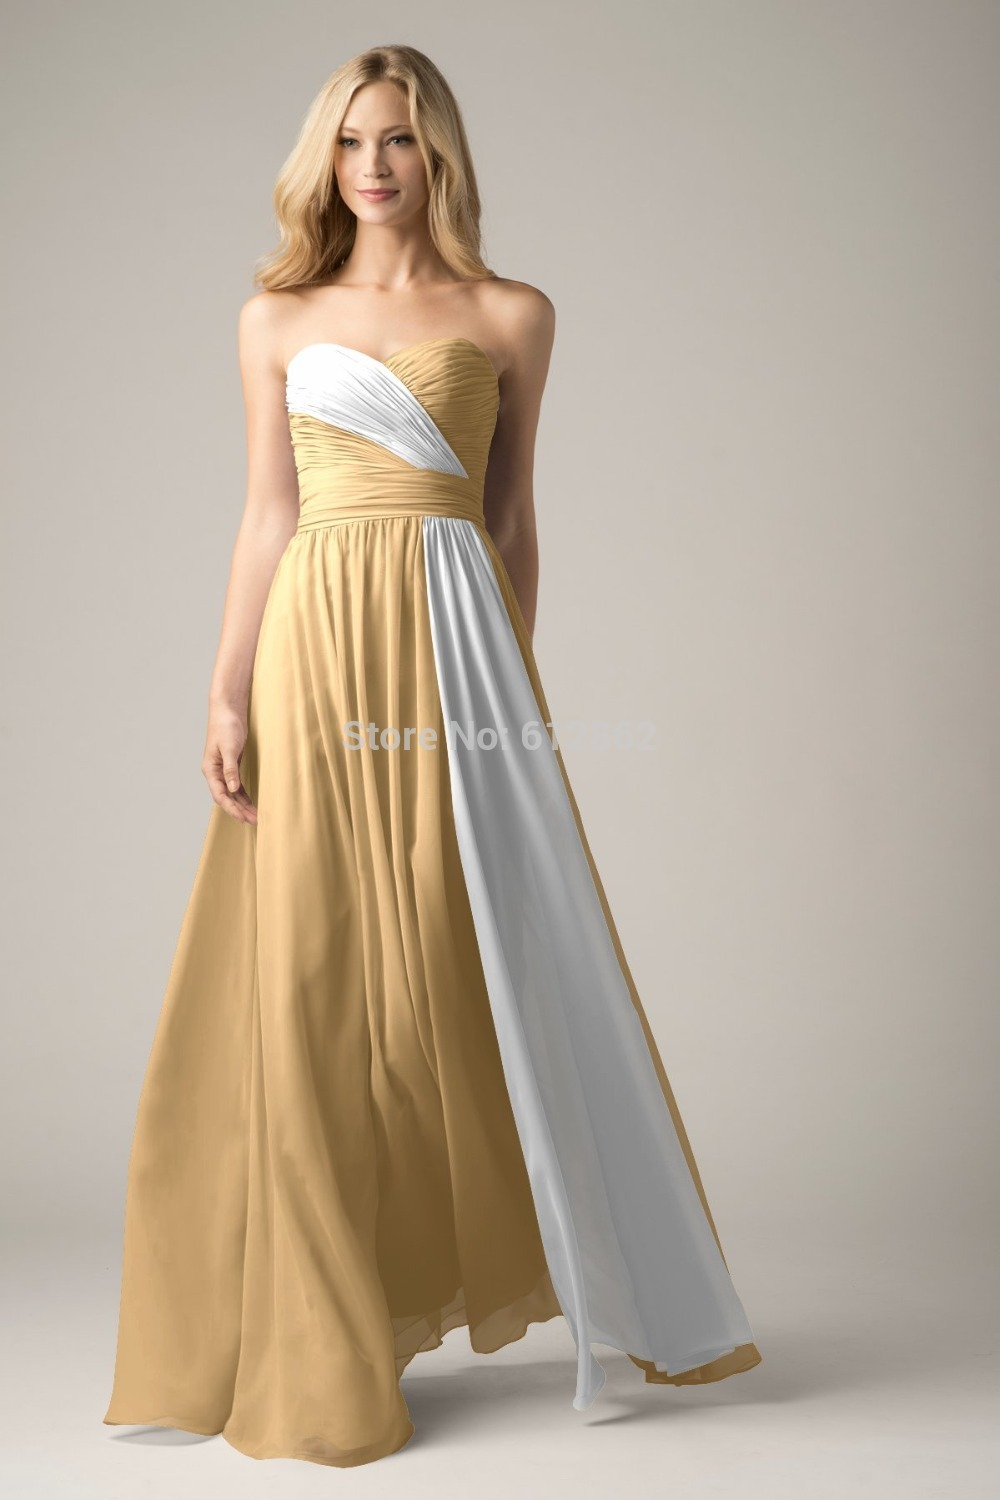 white and gold wedding dresses 2017 new strapless chiffon white gold prom dress in 1297